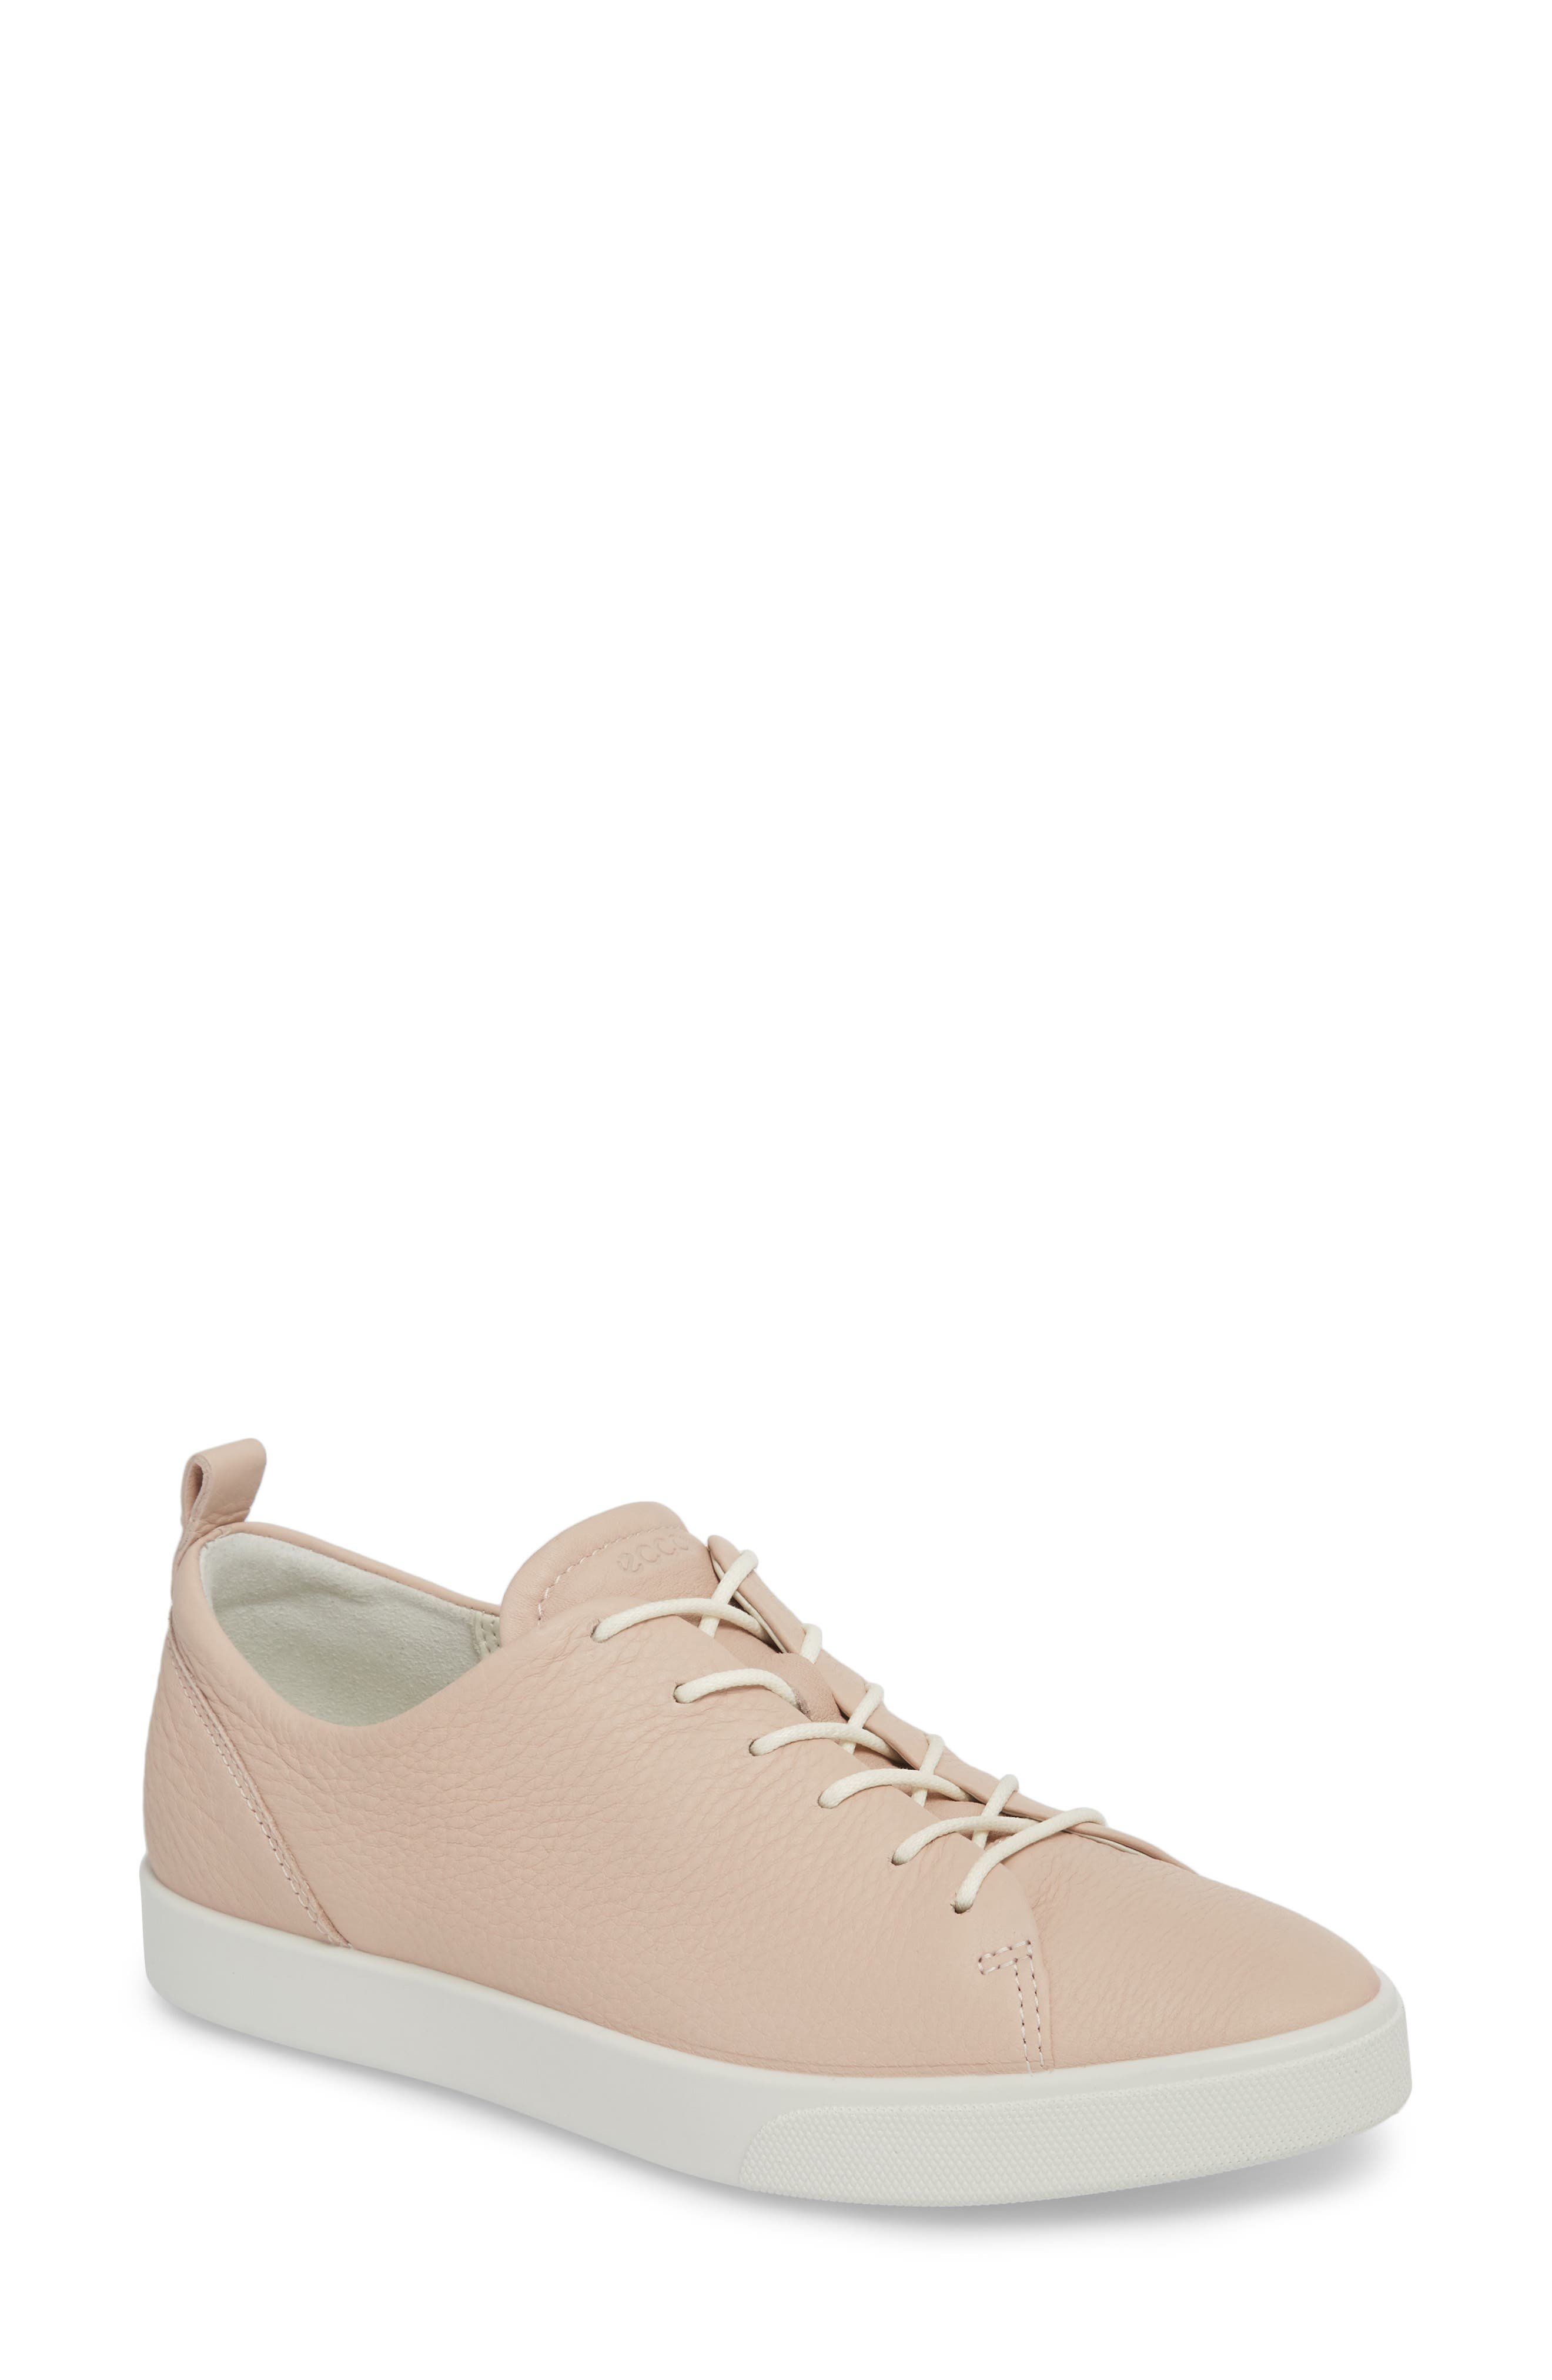 Gillian Sneaker,                             Main thumbnail 1, color,                             Rose Dust Leather